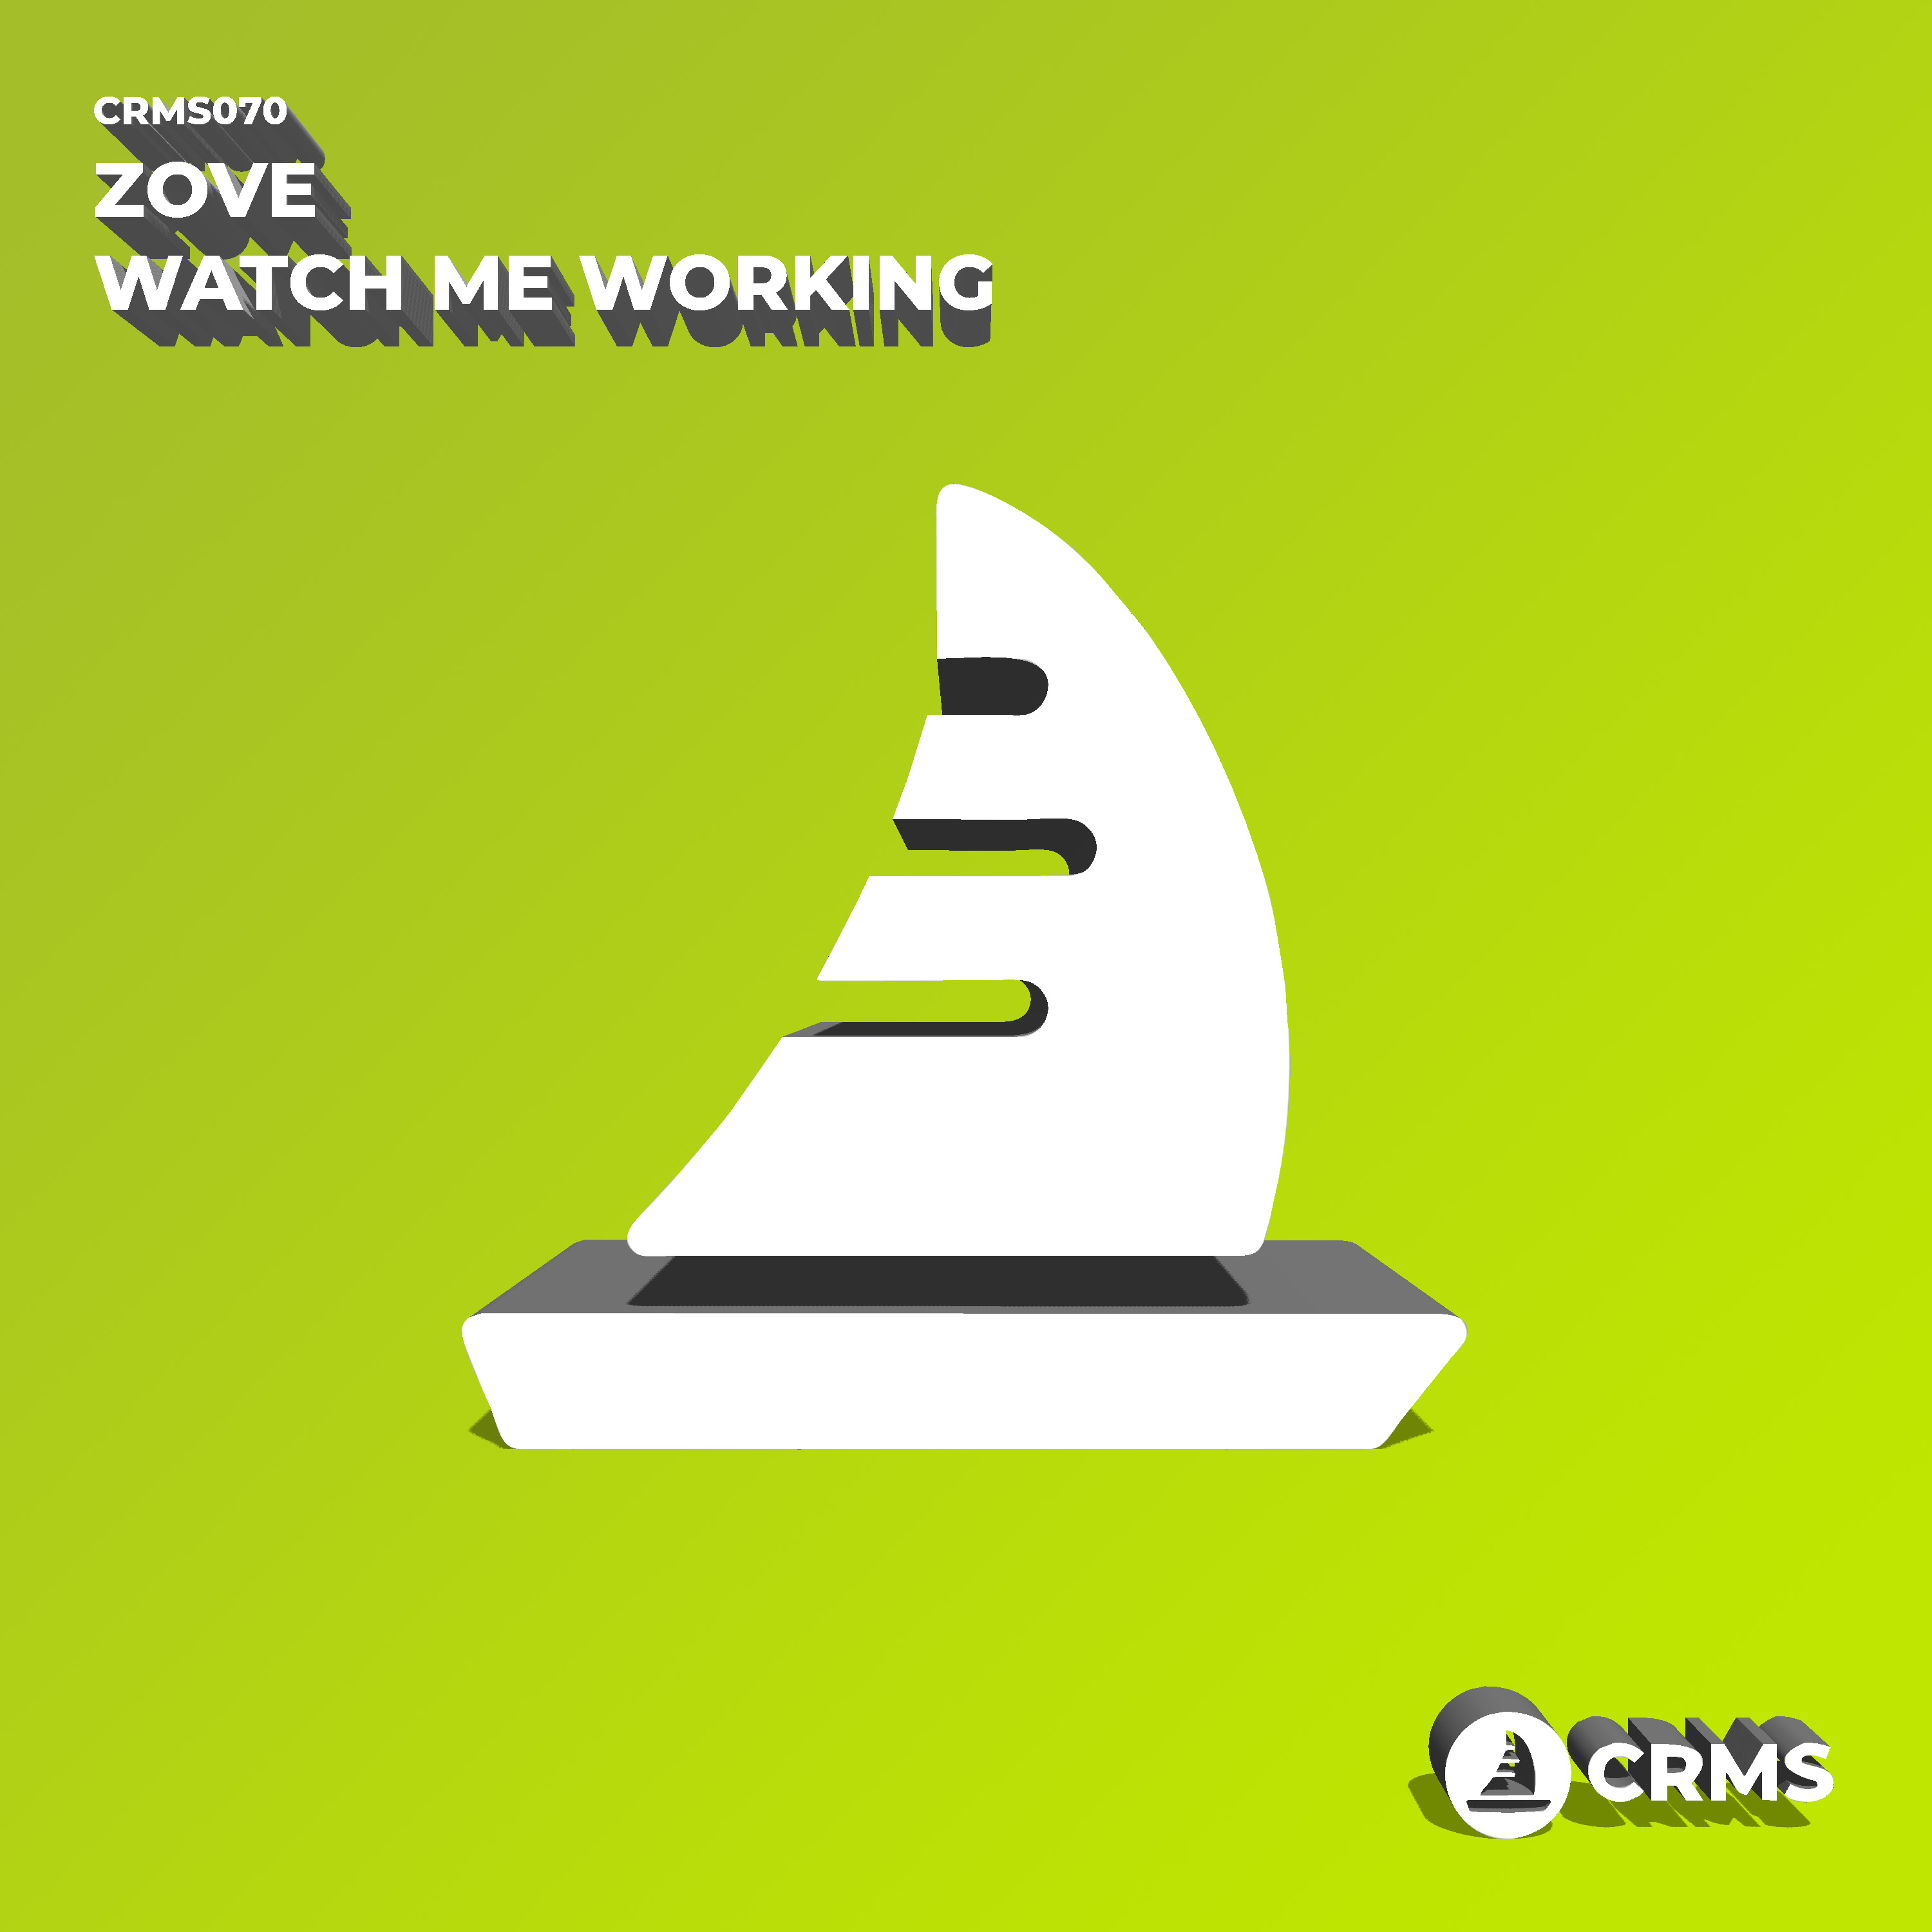 Zove - Watch me working [crms070]